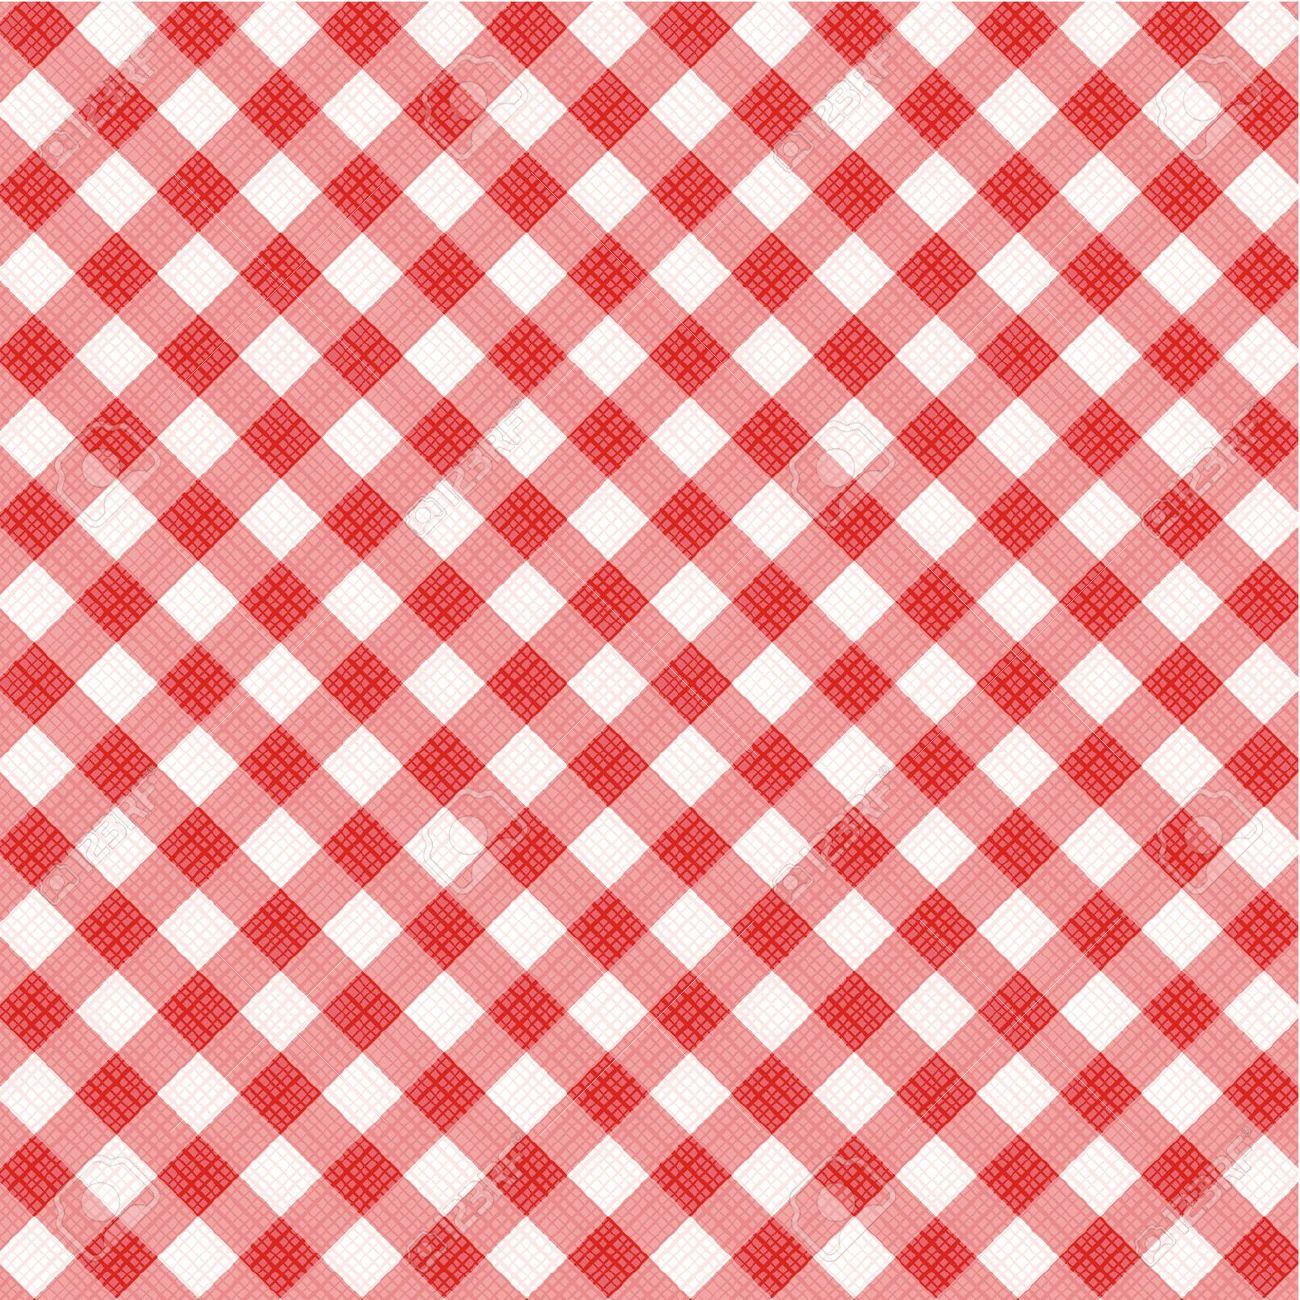 Free clipart red and green ginham plaid.